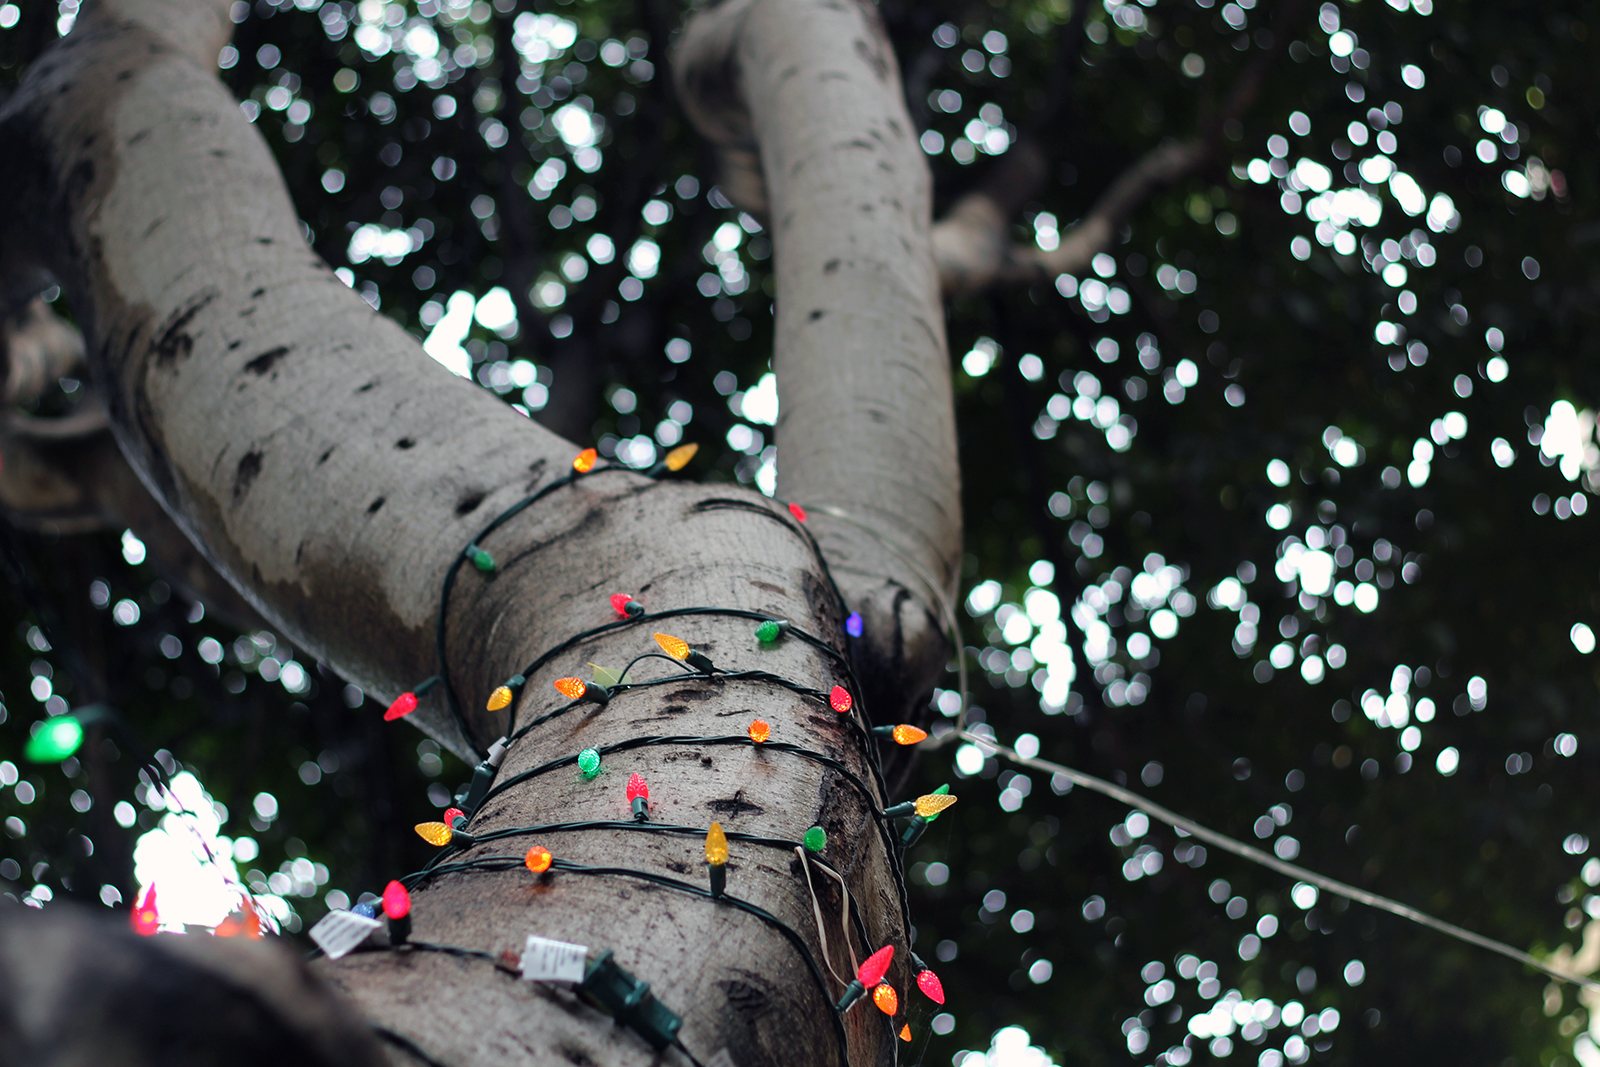 A tree decorated with lights on 24th Street.